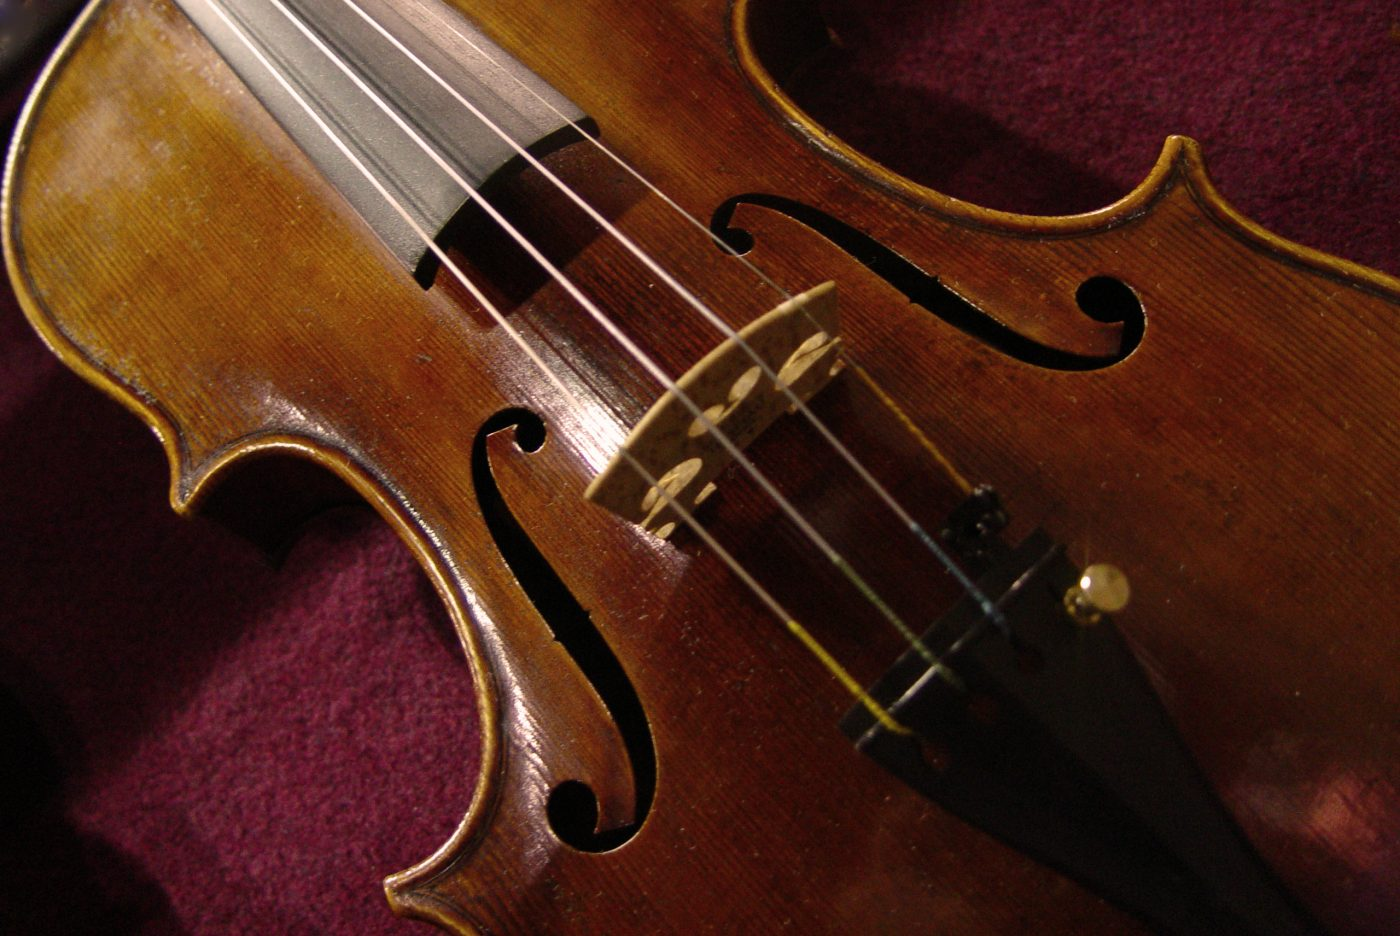 violins-1312512-freeimages-by-joanathan-king